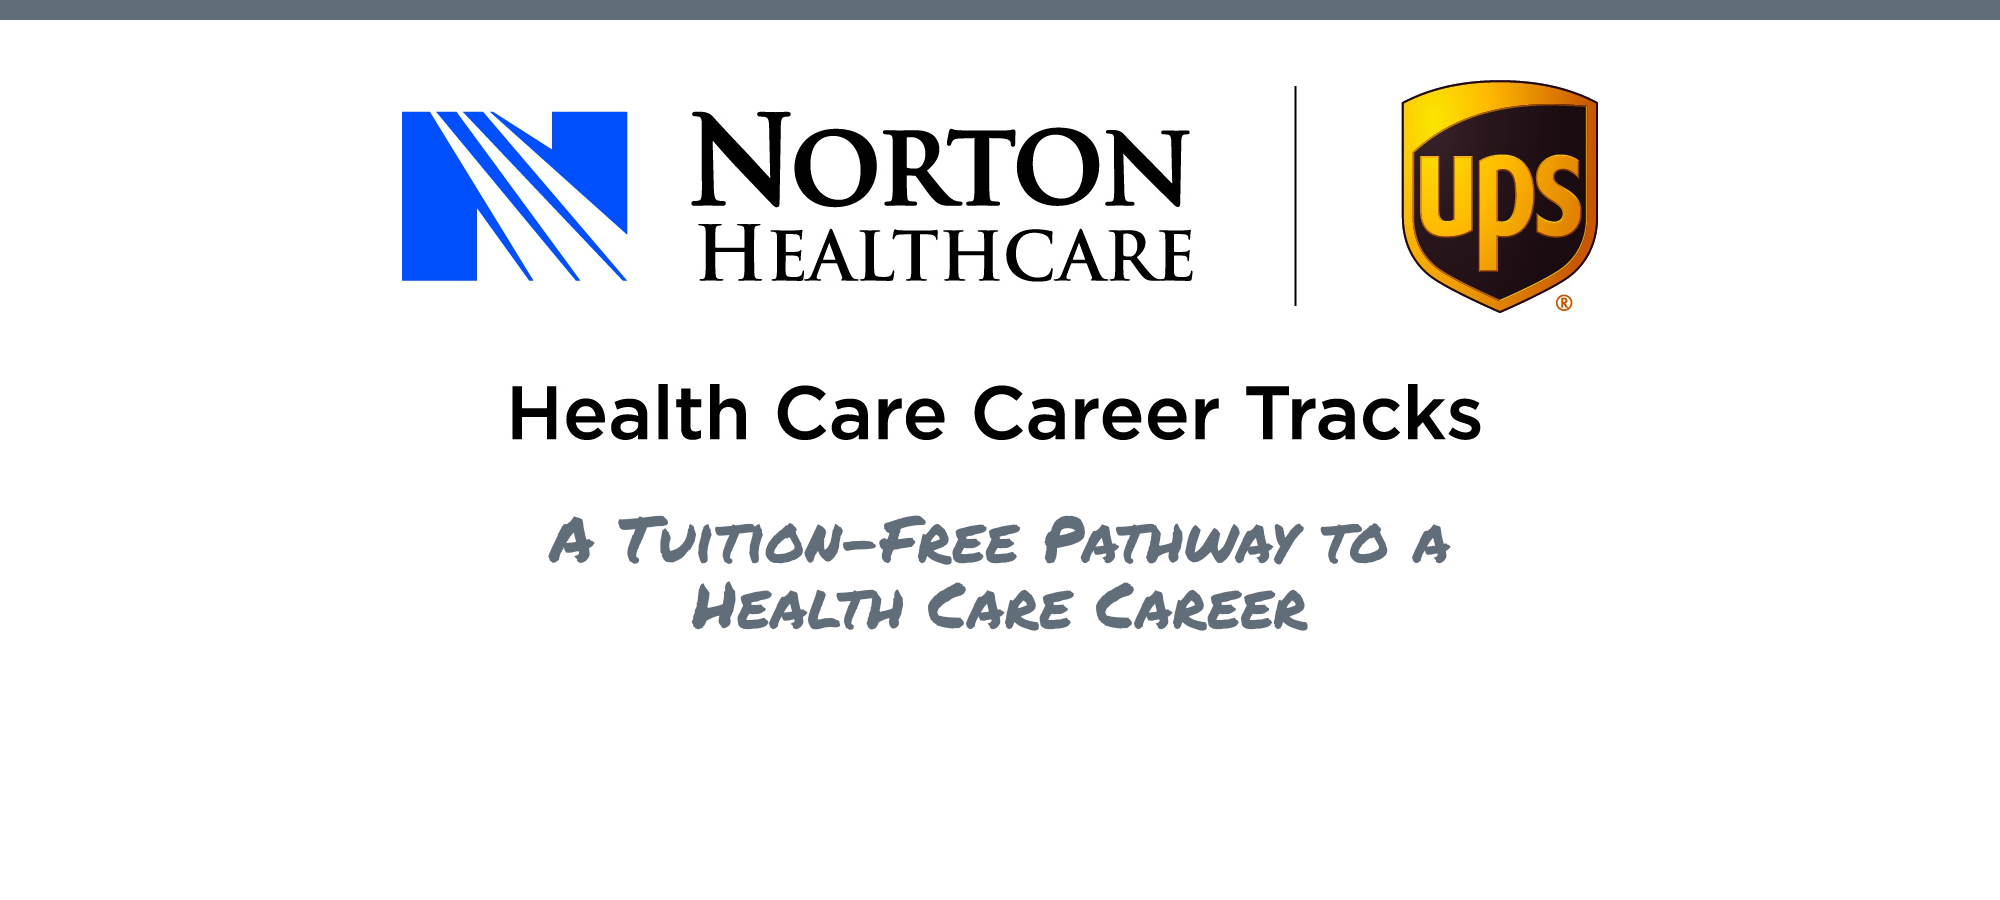 Norton Healthcare. Health Care Career Tracks. A Tuition-Free Pathway to a Health Care Career